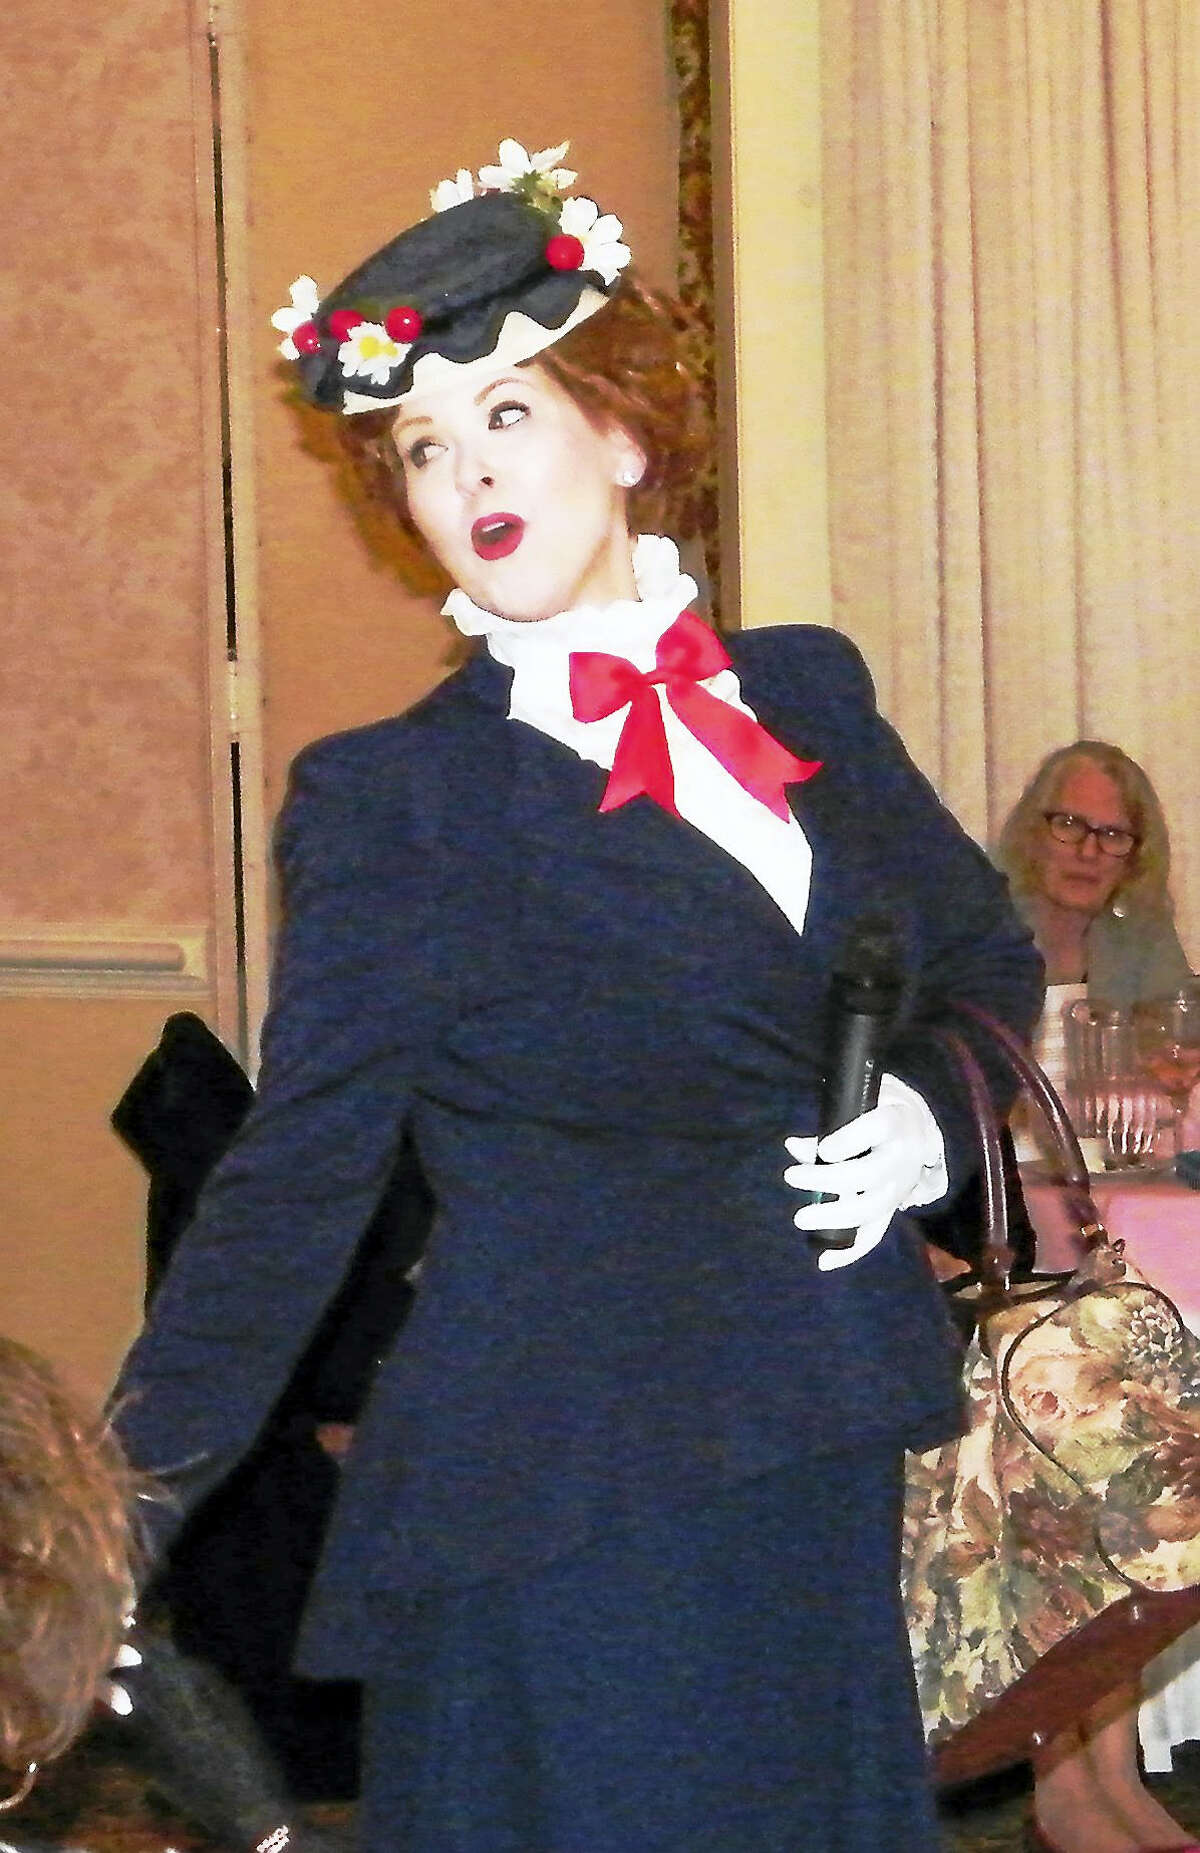 """Actress Rebekah Derrick performed her role as """"Mary Poppins"""" at the recent Charlotte Hungerford Hospital auxiliary's fashion show."""